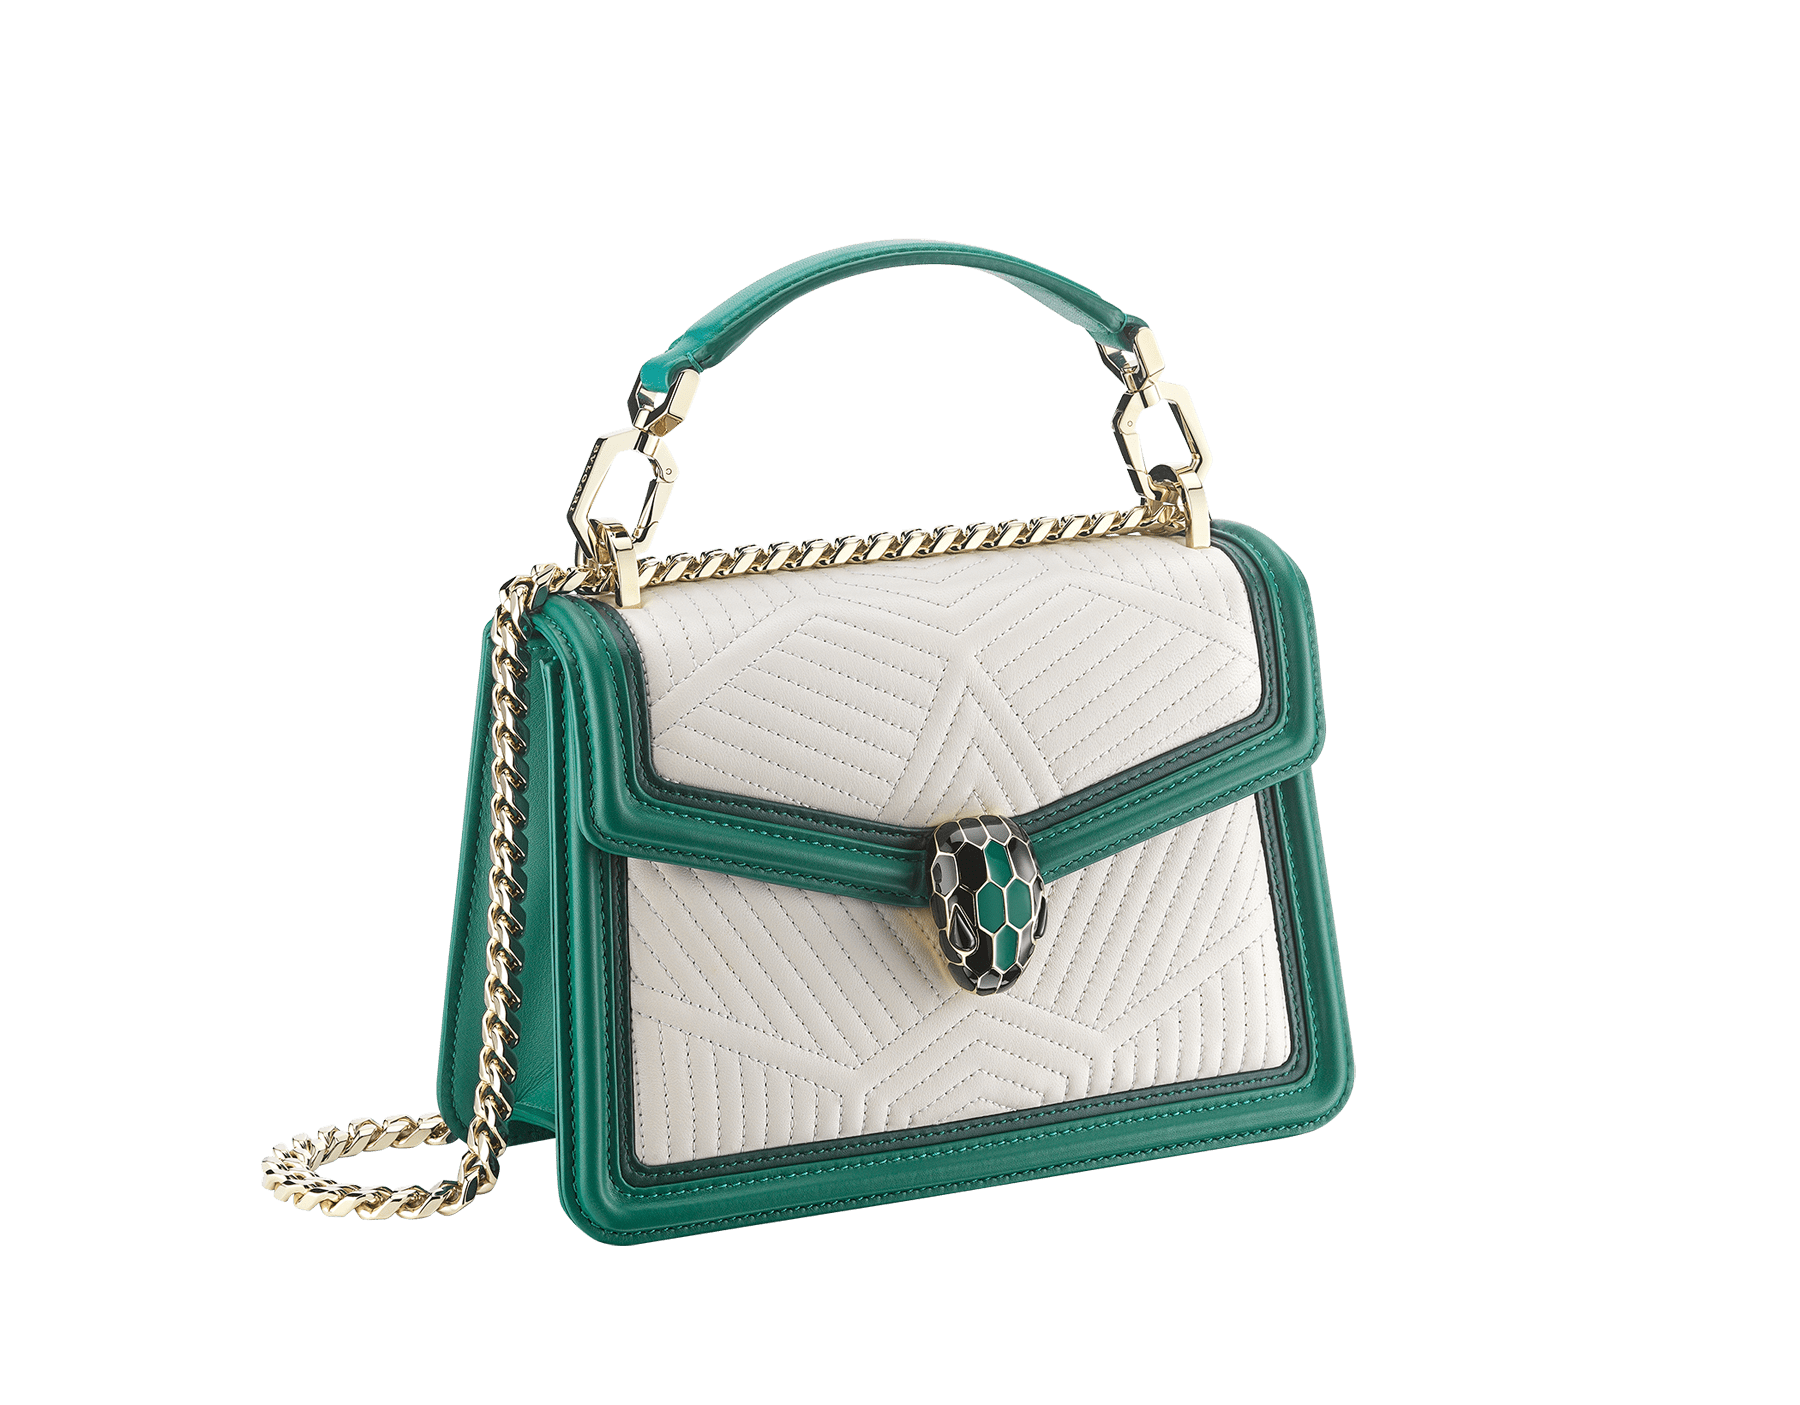 """Serpenti Diamond Blast"" top handle bag in white agate quilted nappa leather and emerald green smooth calf leather frames. Iconic snakehead closure in light gold-plated brass enriched with matte black and shiny emerald green enamel and black onyx eyes. 289944 image 2"